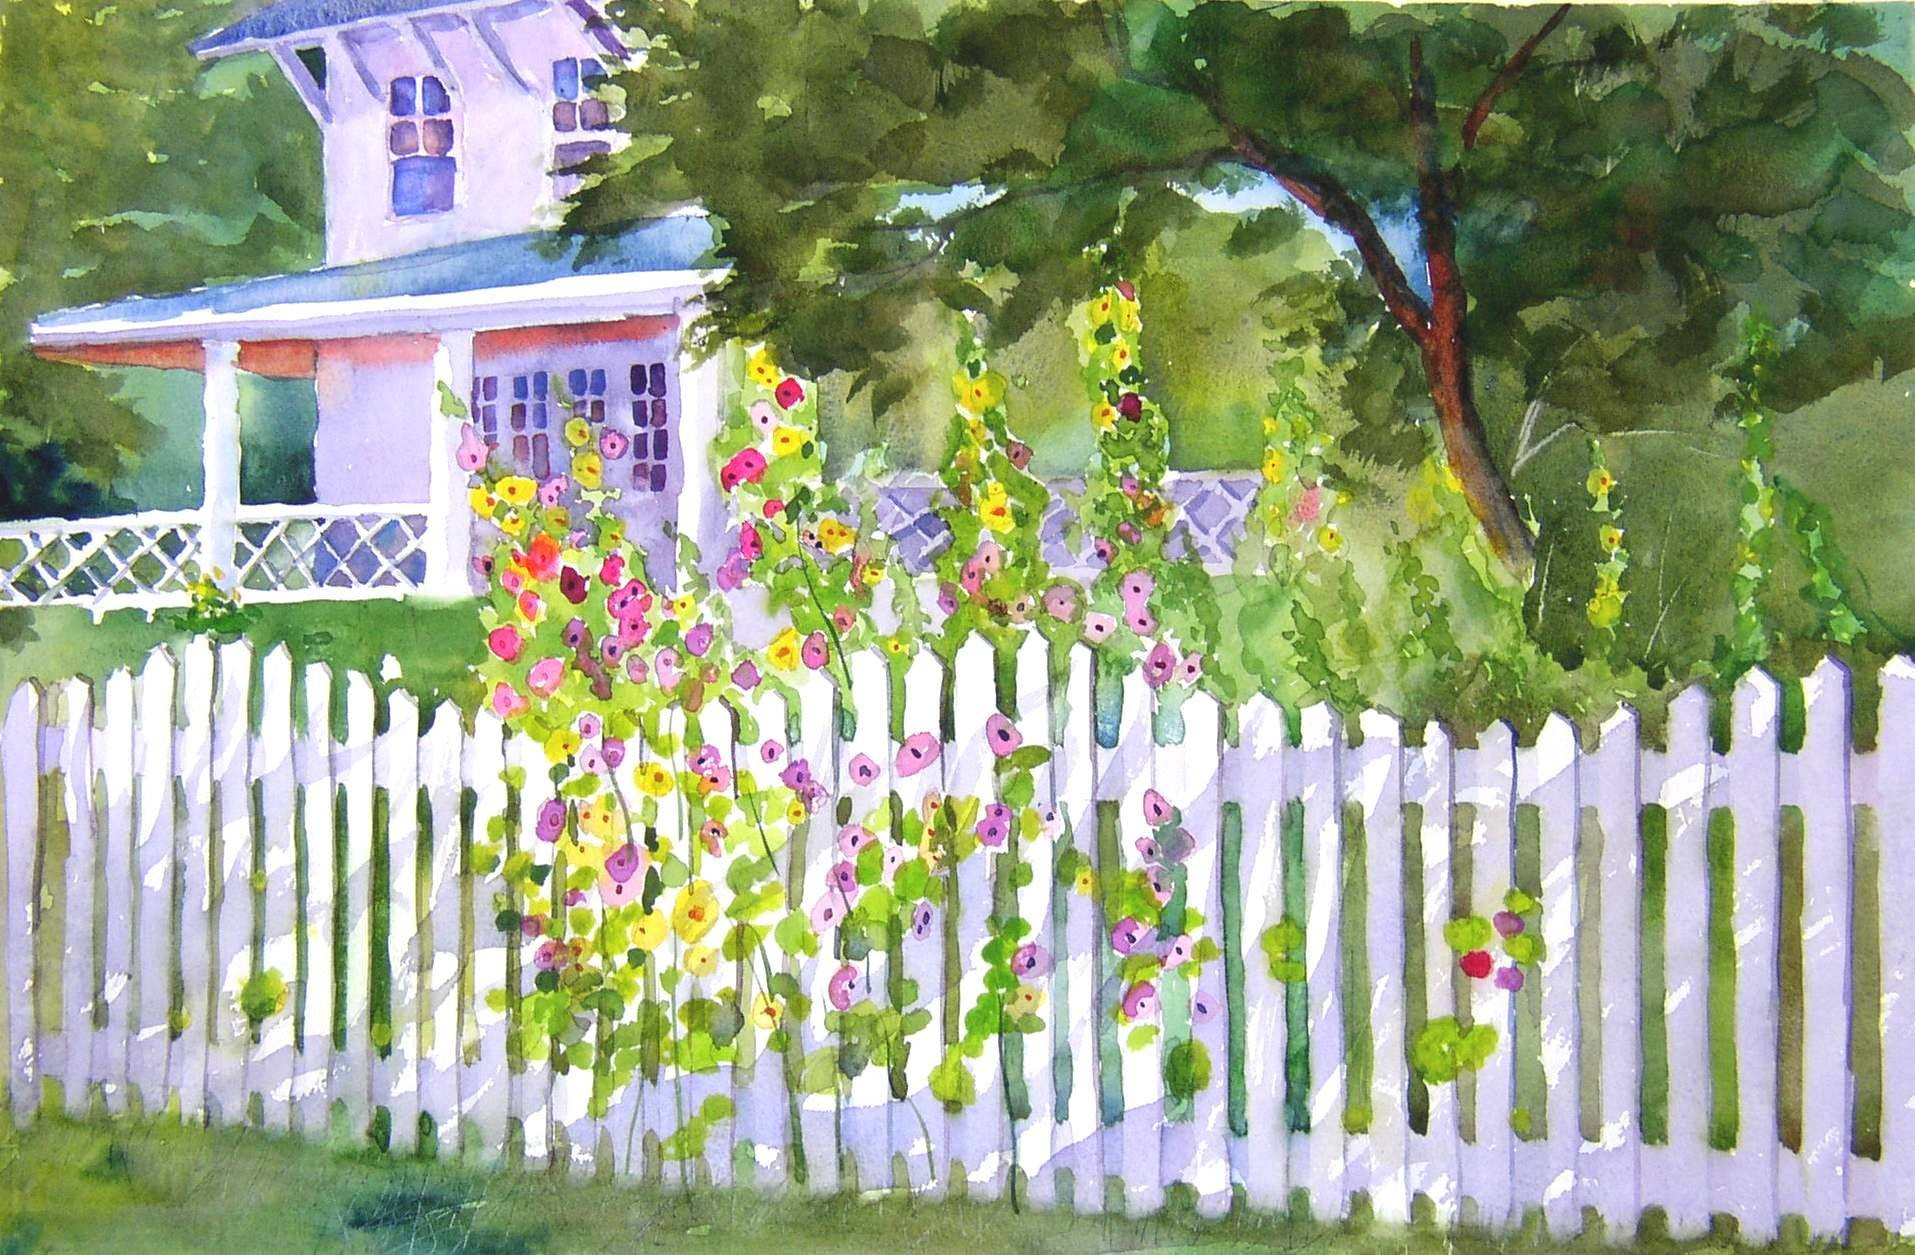 Hollyhock_Fence.jpg